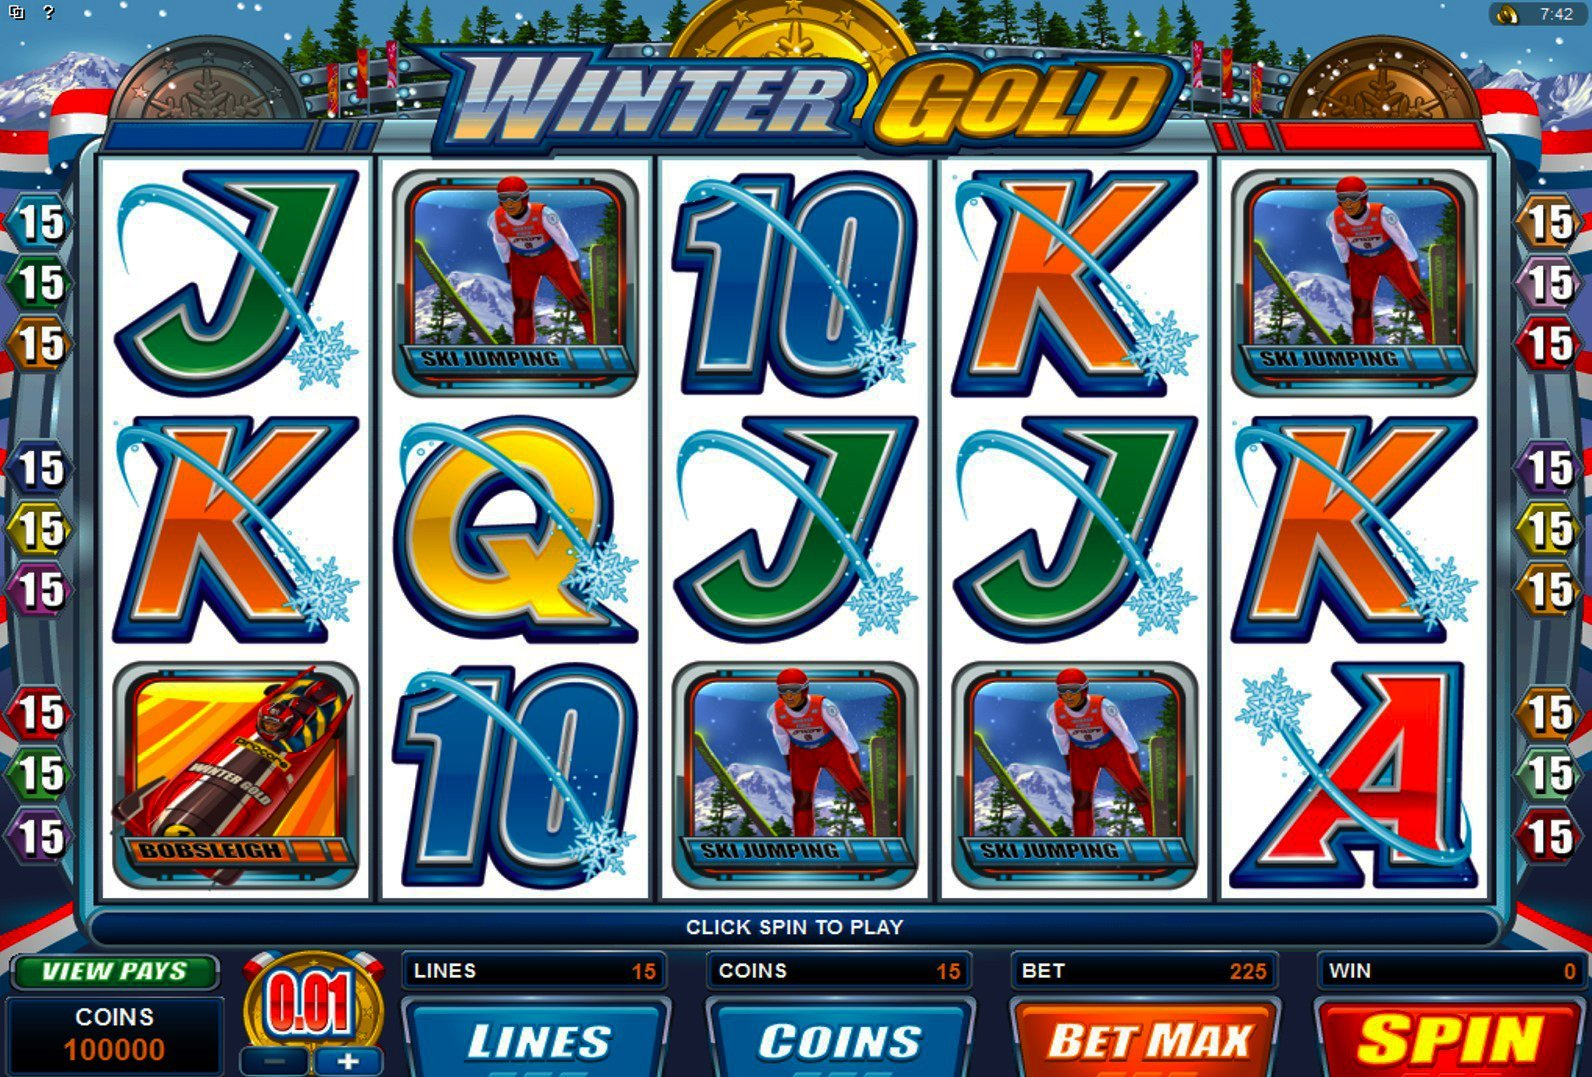 Winter Gold Slot Review